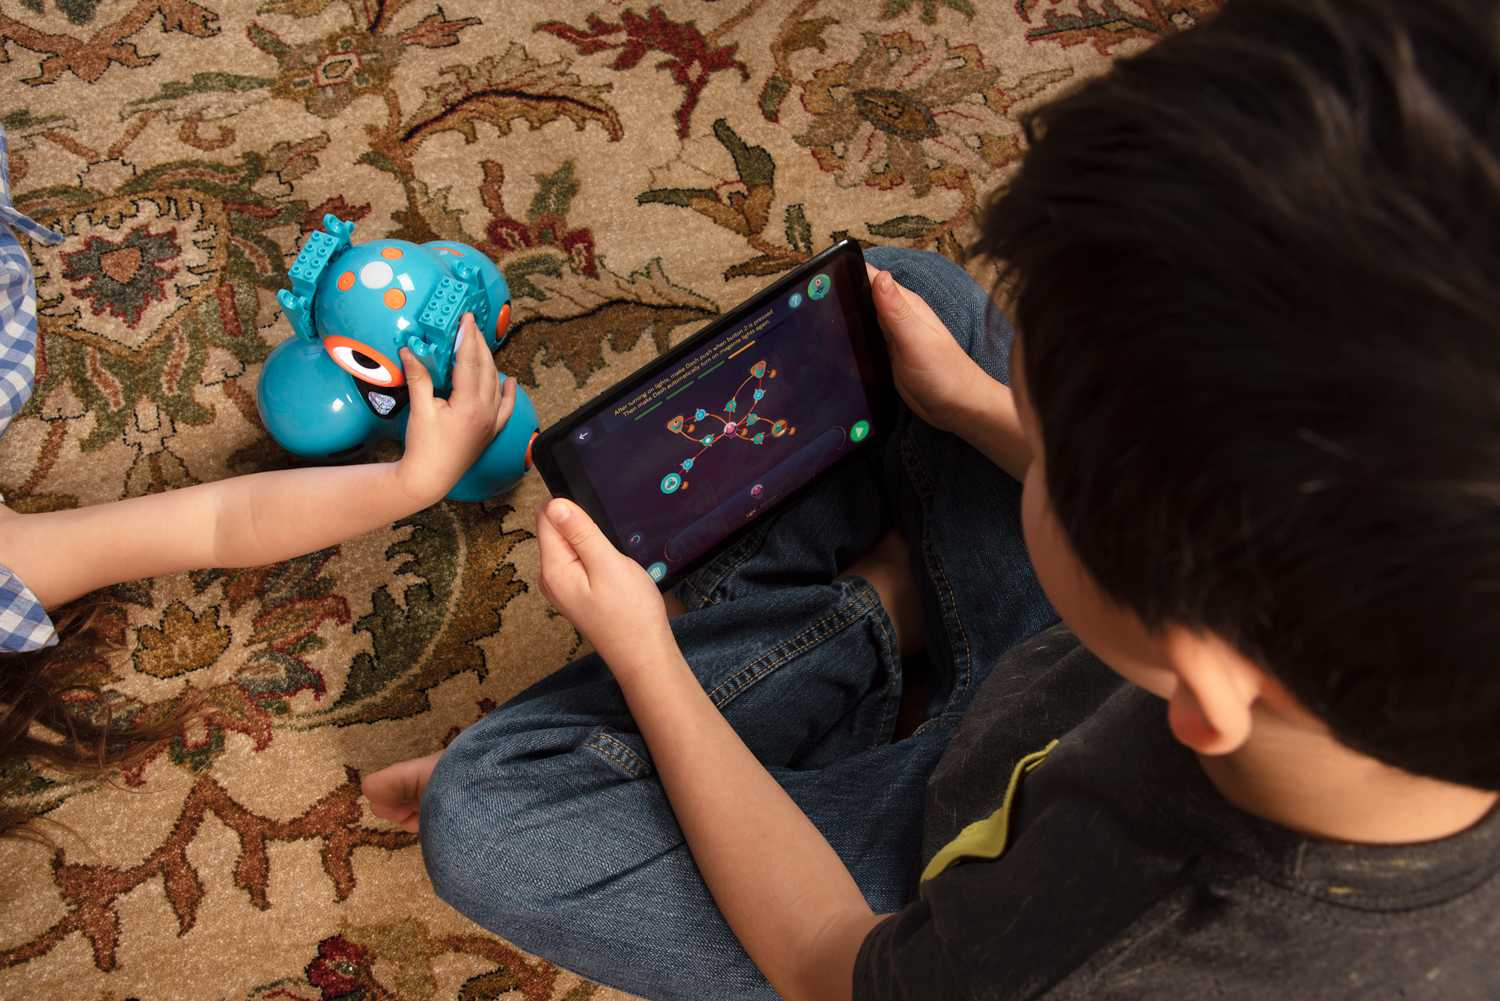 The 10 Best Electronic Toys for Kids in 2020